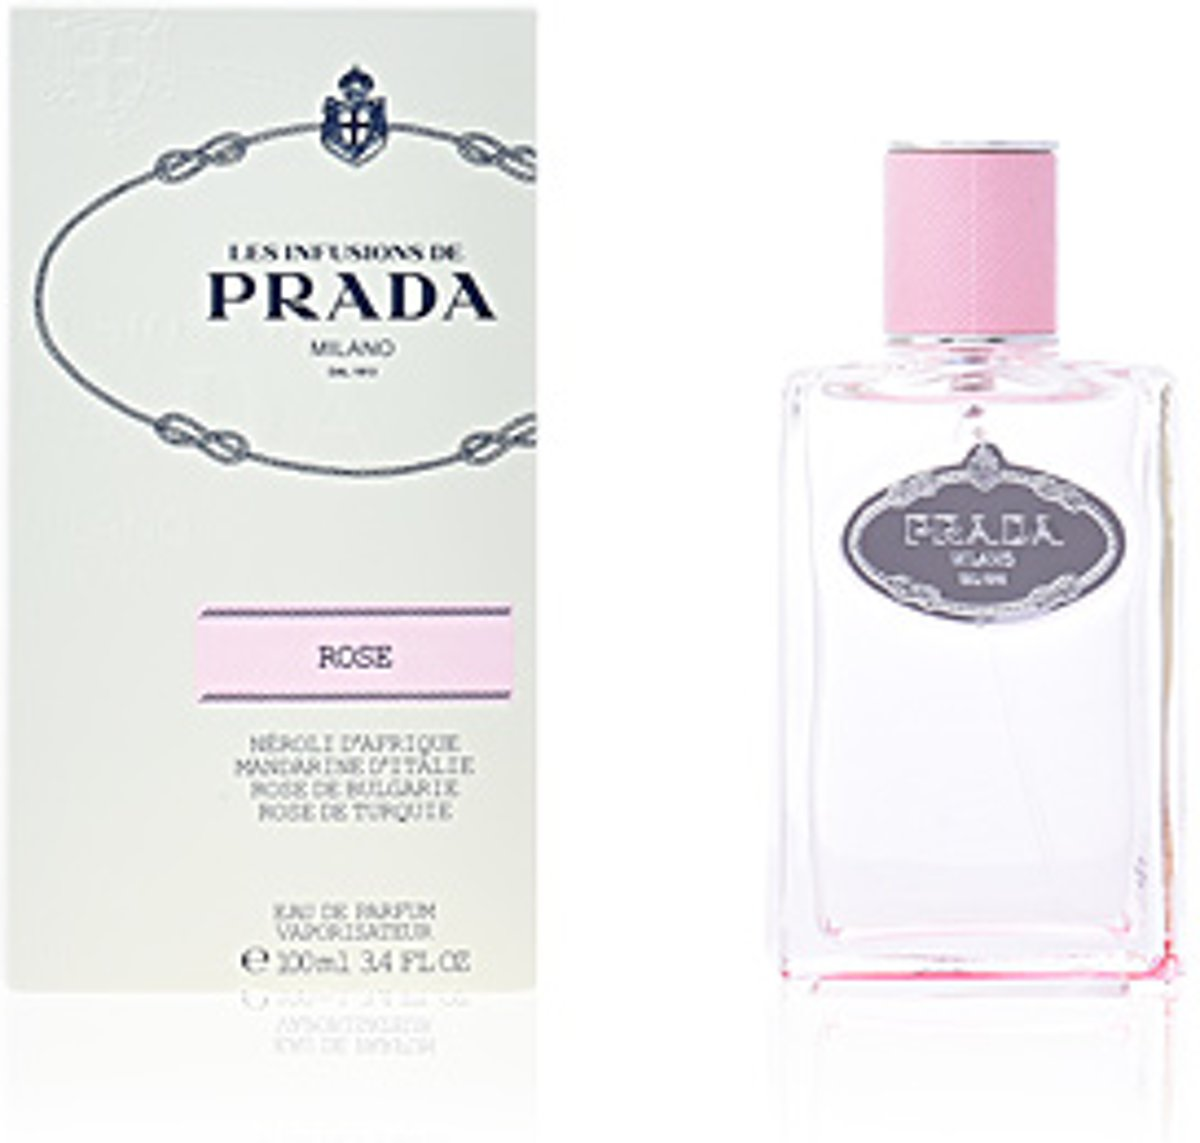 Prada INFUSION ROSE edp spray 100 ml